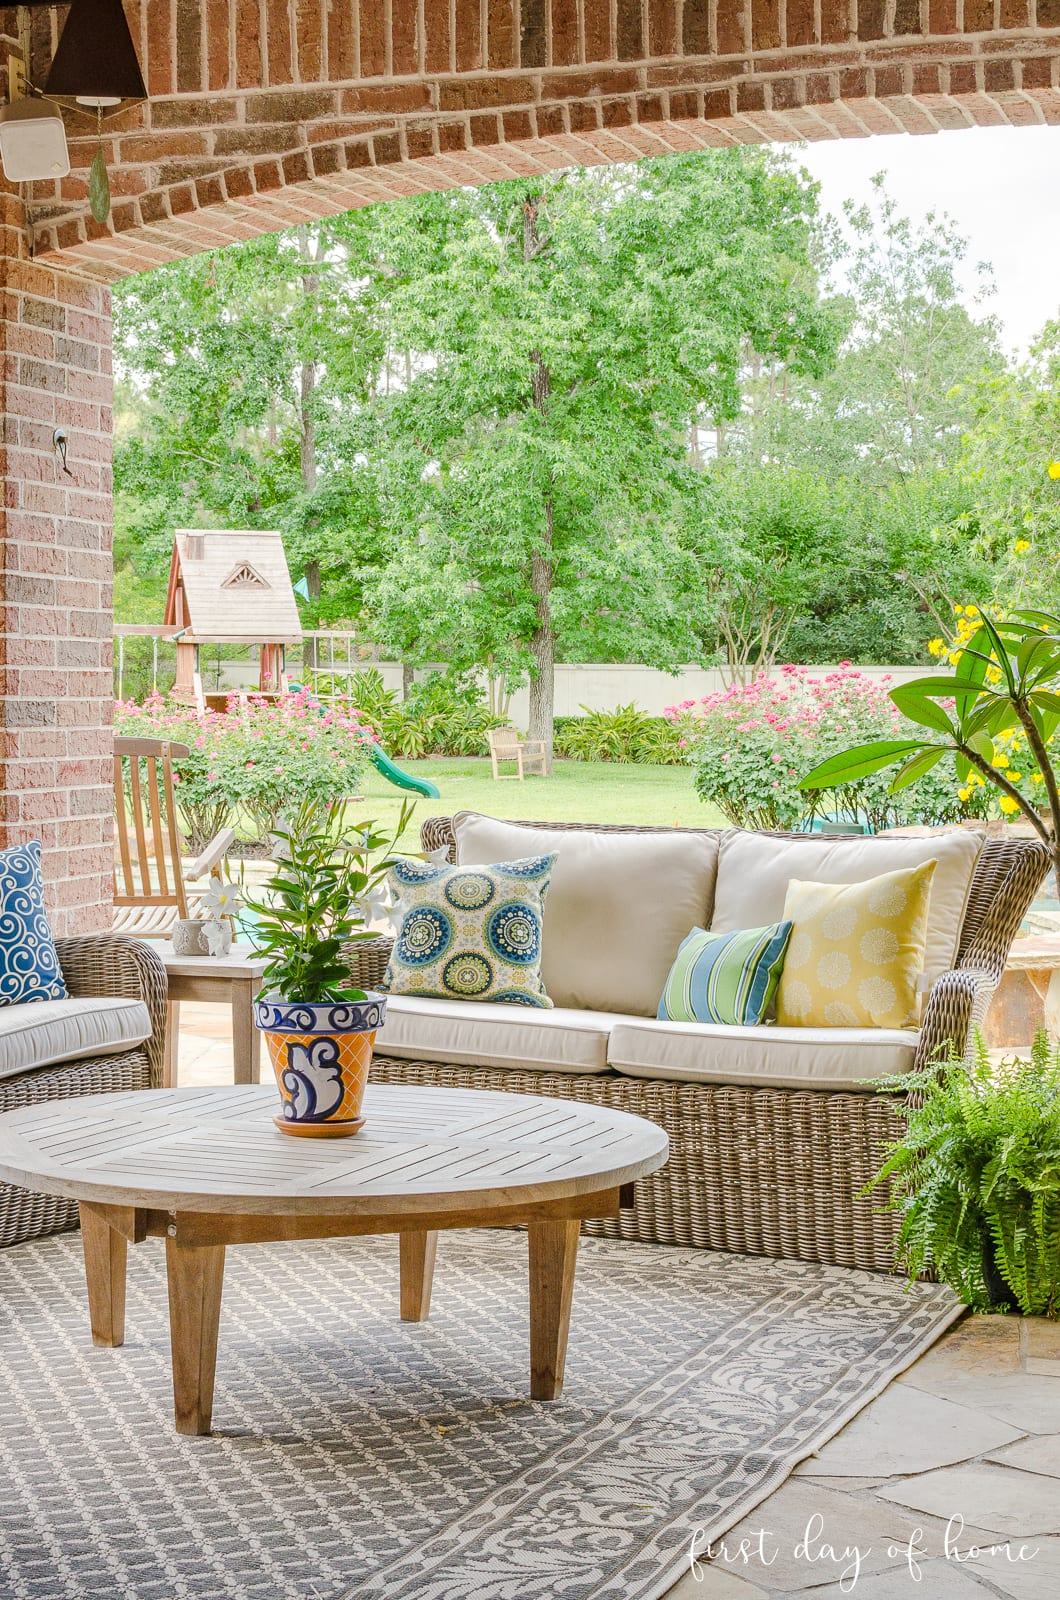 The Best Affordable Ideas For Patio Decor Summer Tour